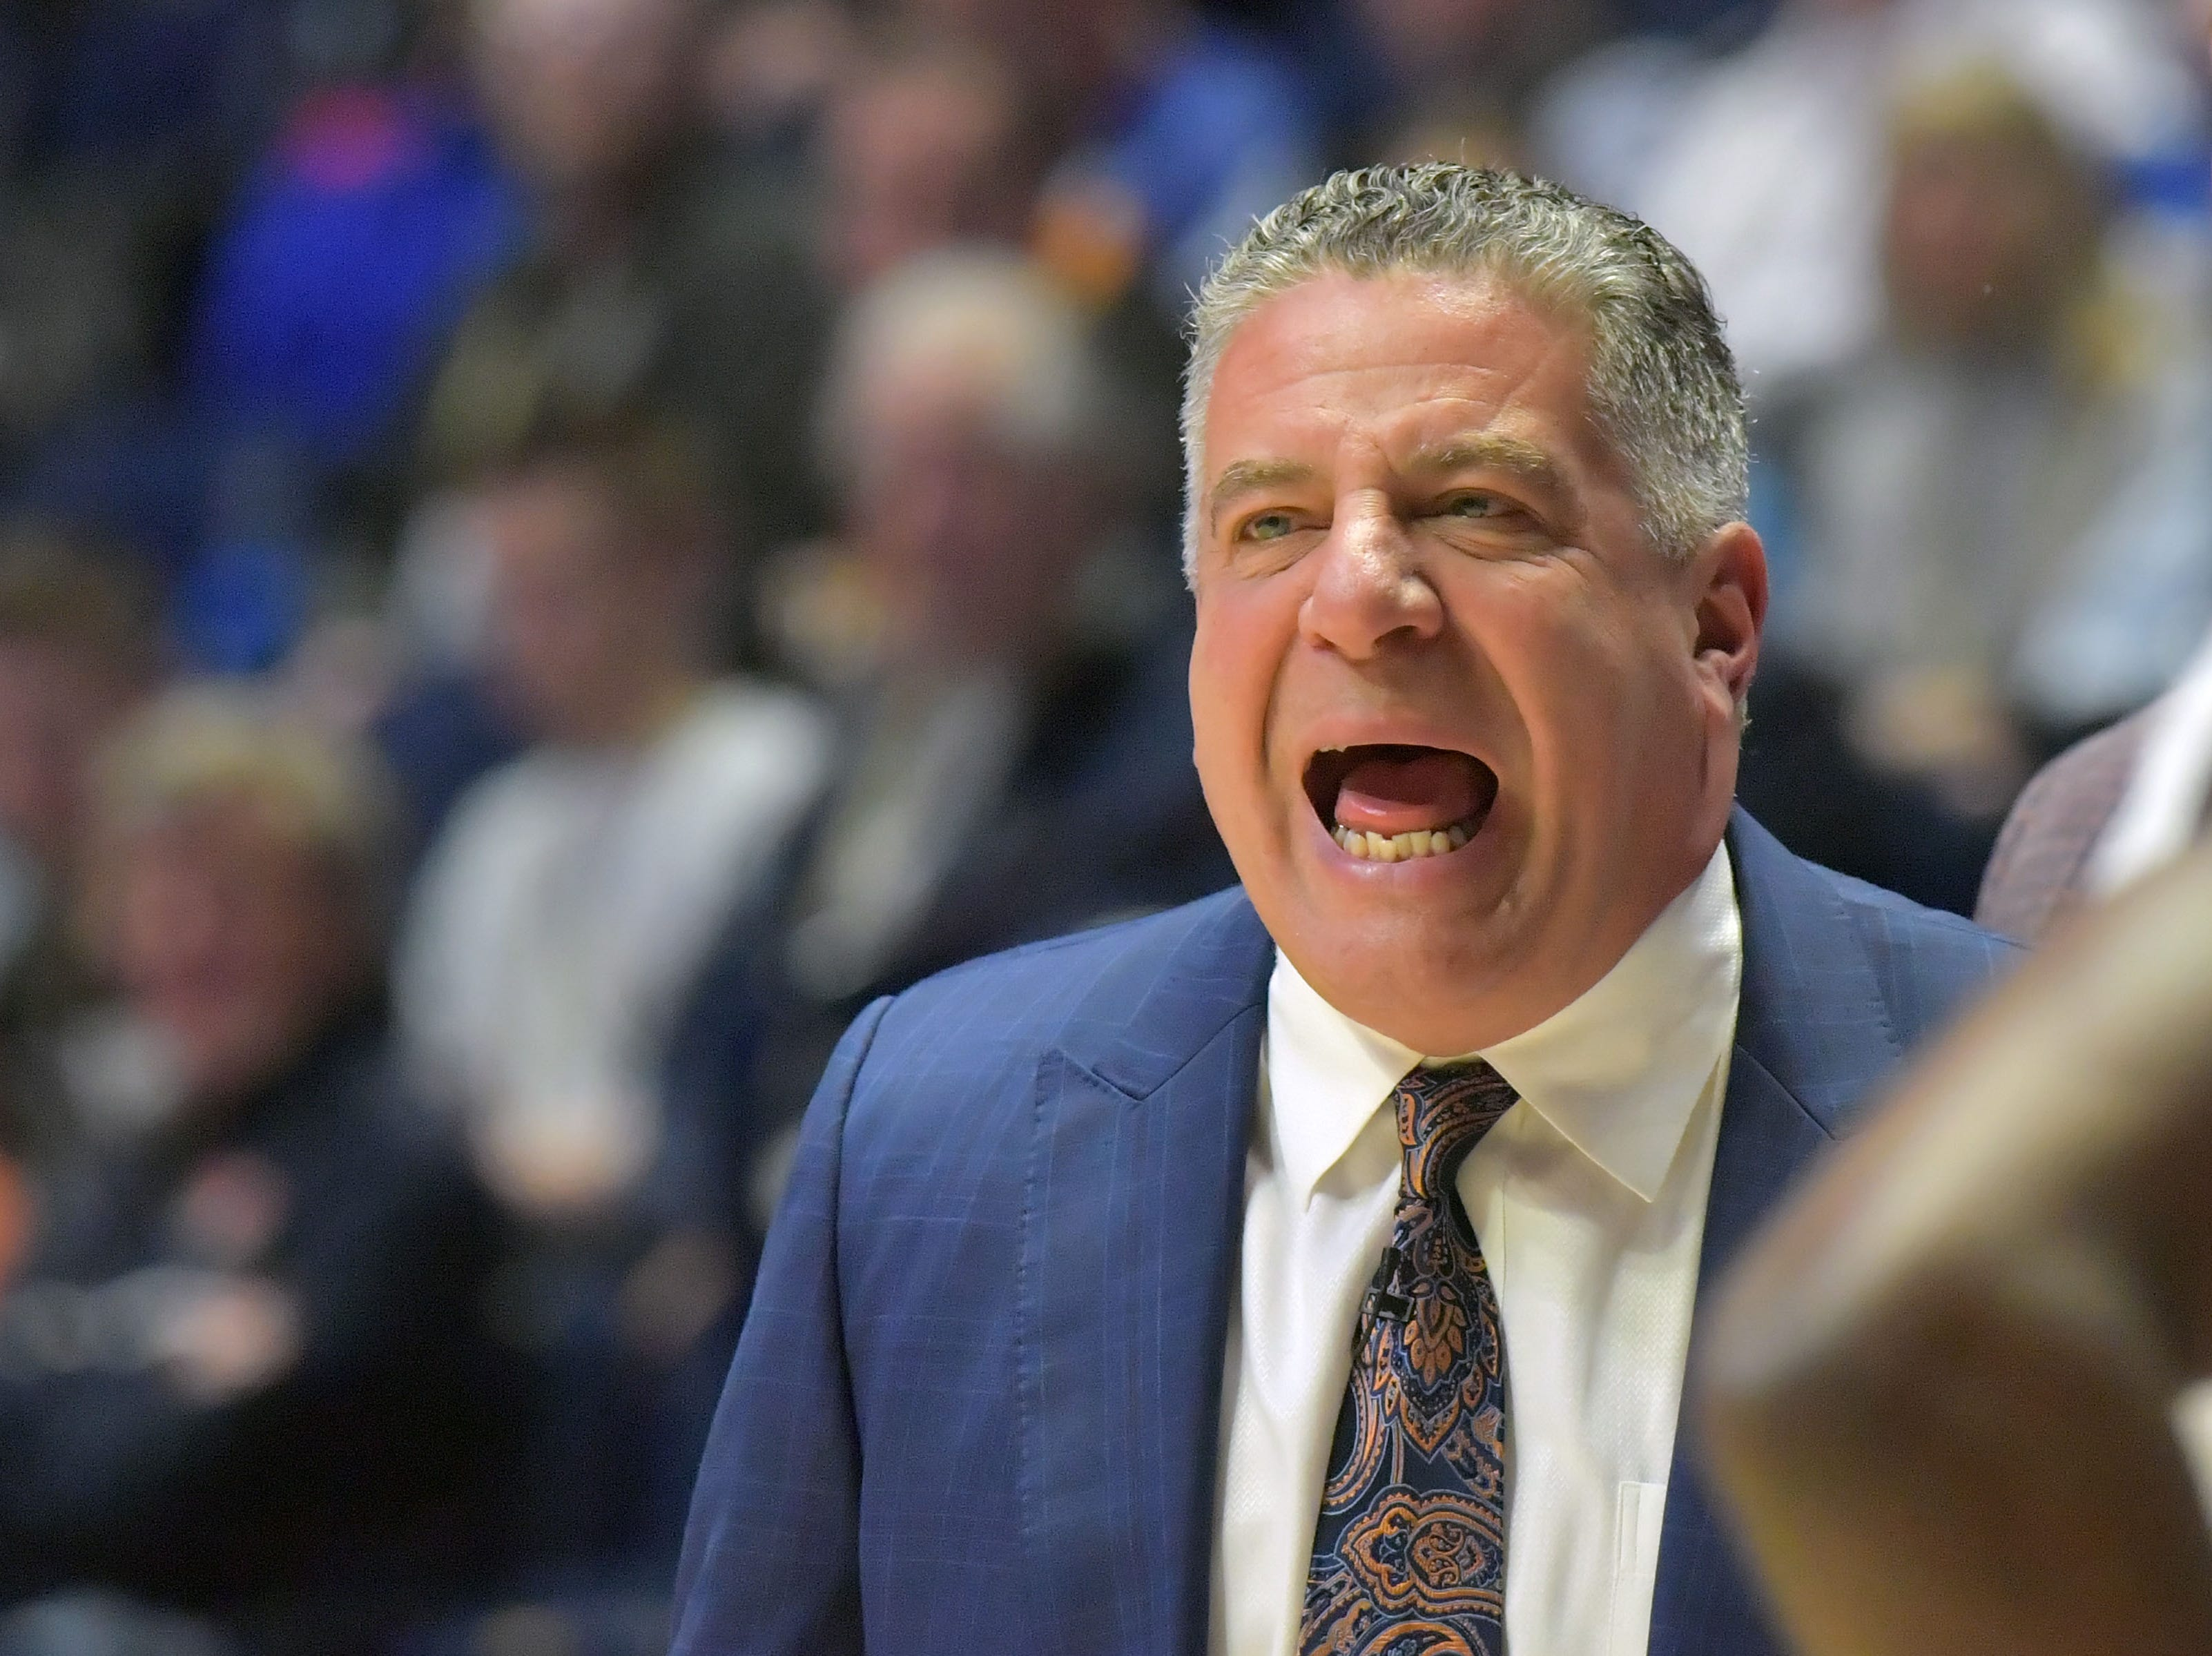 Mar 16, 2019; Nashville, TN, USA; Auburn Tigers head coach Bruce Pearl during the first half of game eleven against the Florida Gators in the SEC conference tournament at Bridgestone Arena. Mandatory Credit: Jim Brown-USA TODAY Sports